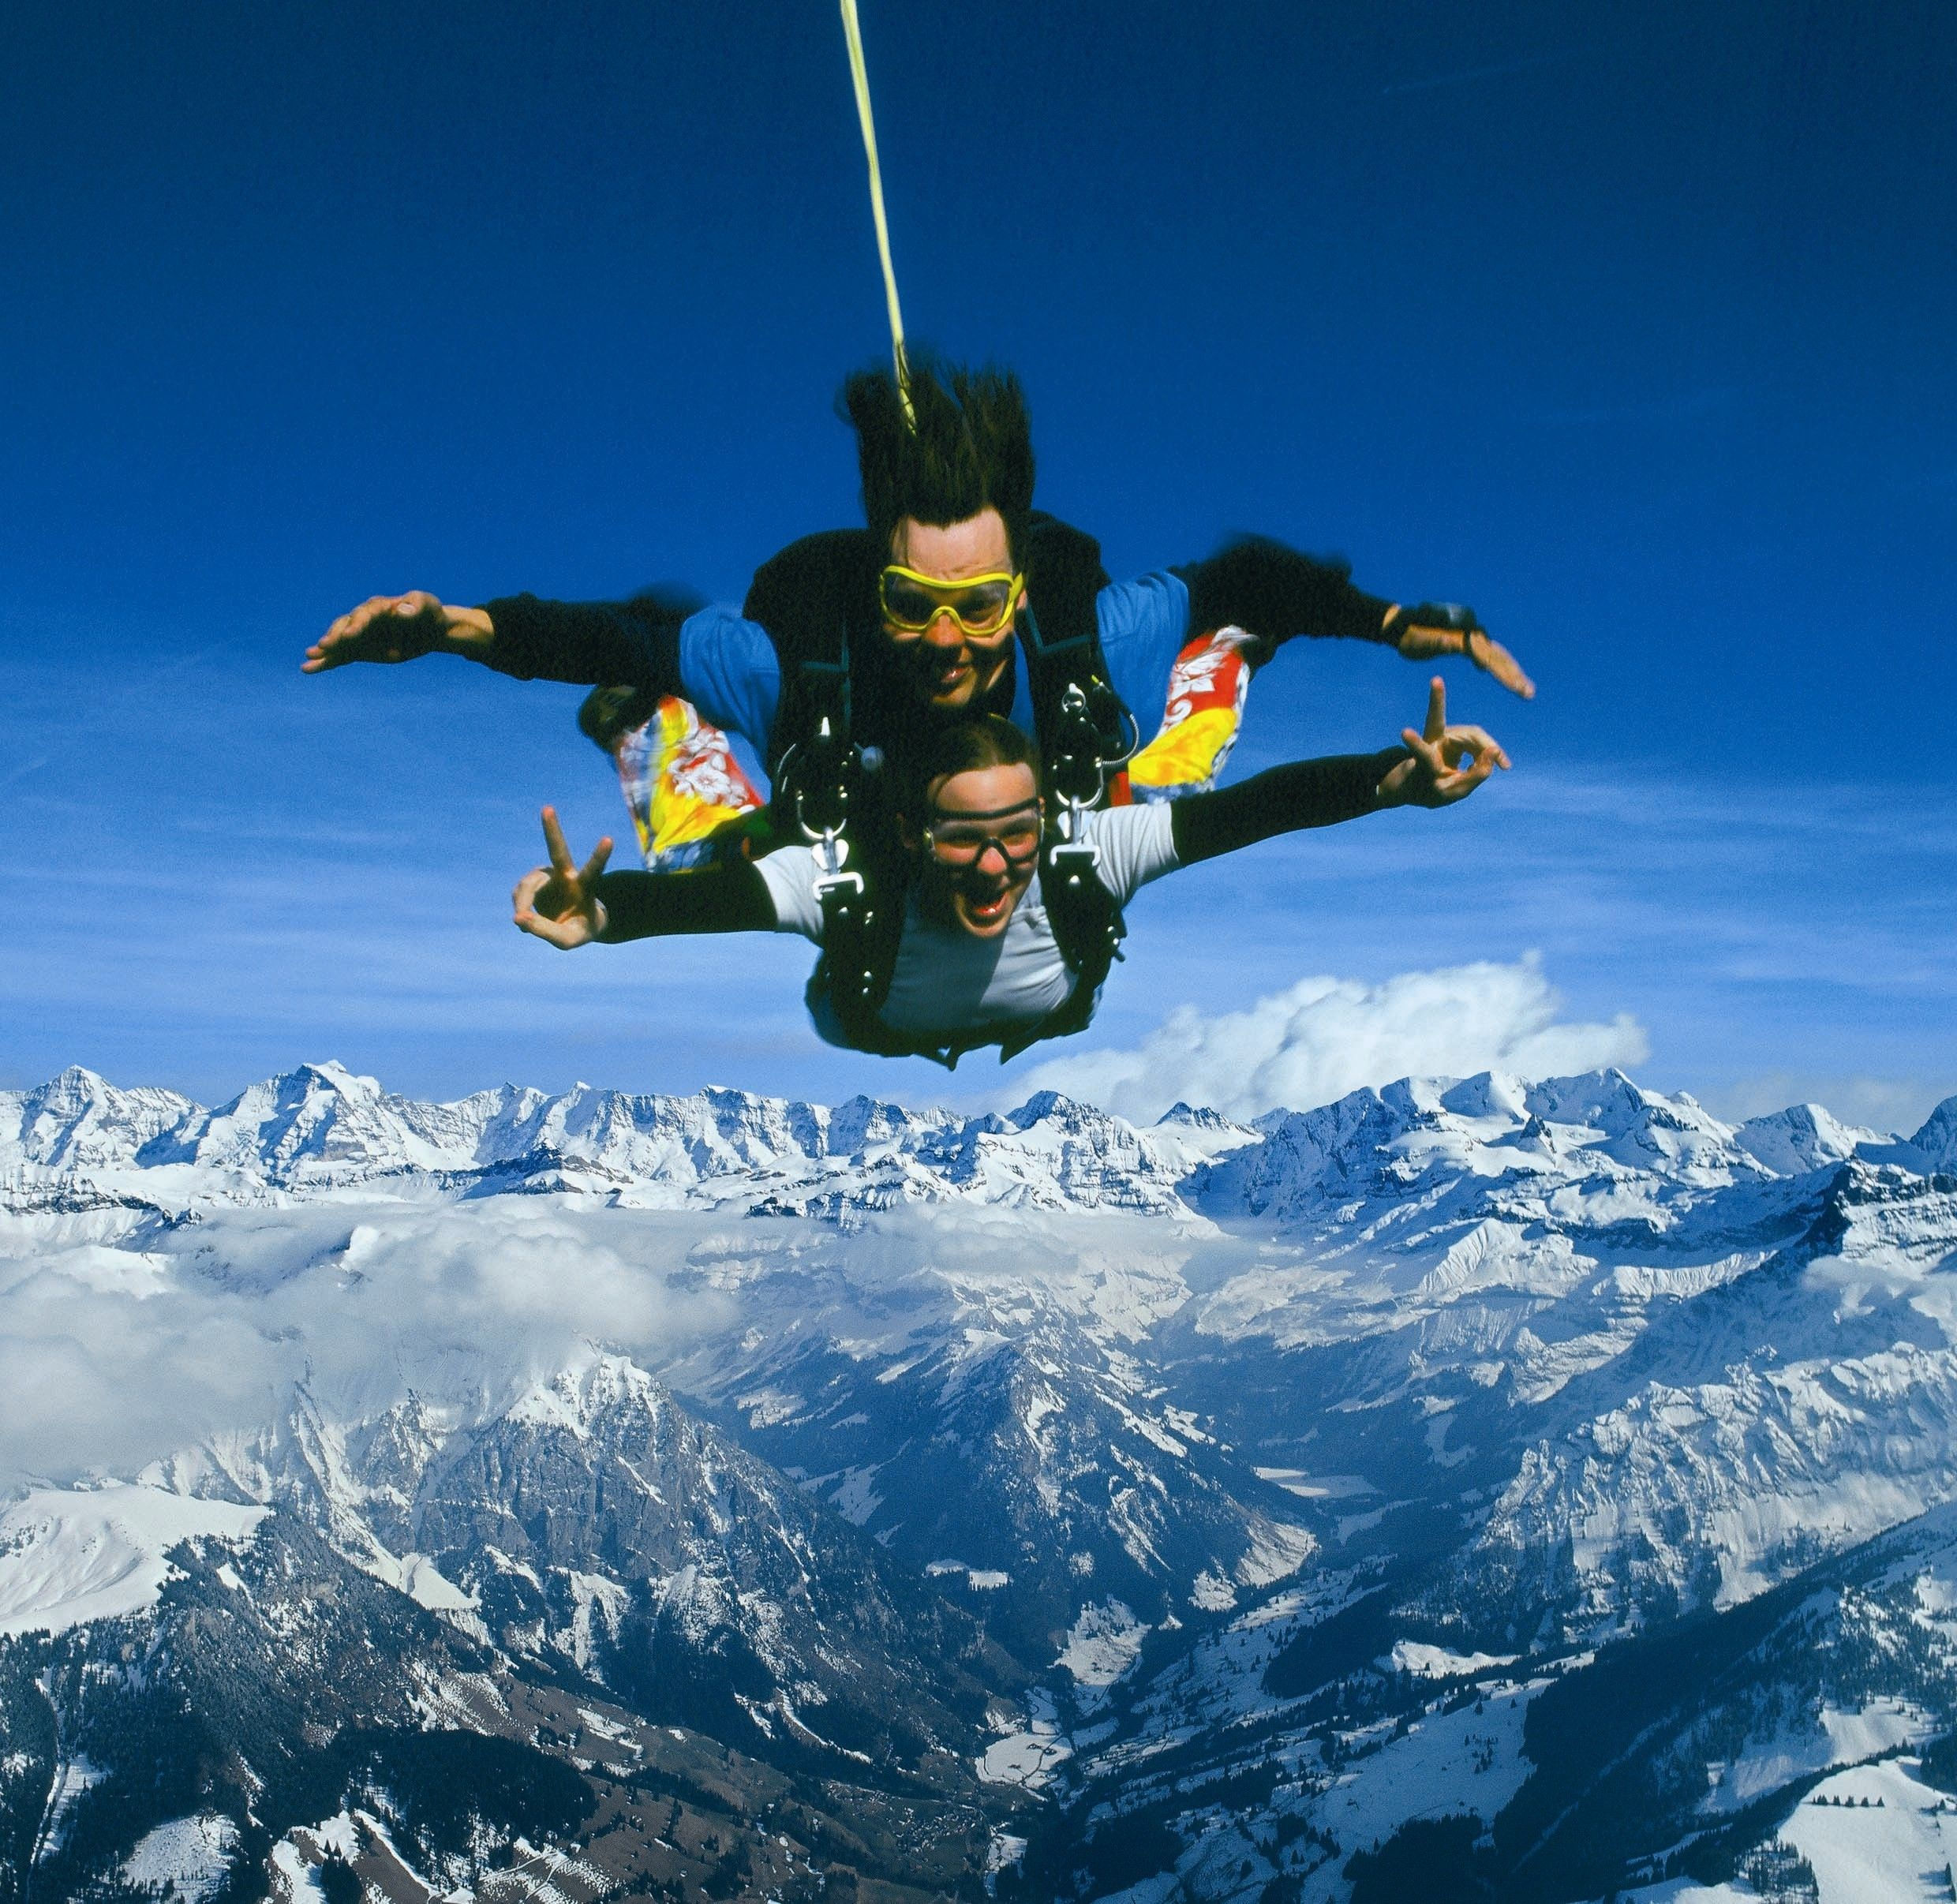 Extreme Sports: #Shopkick #TreatYourself I Live For Opportunities For